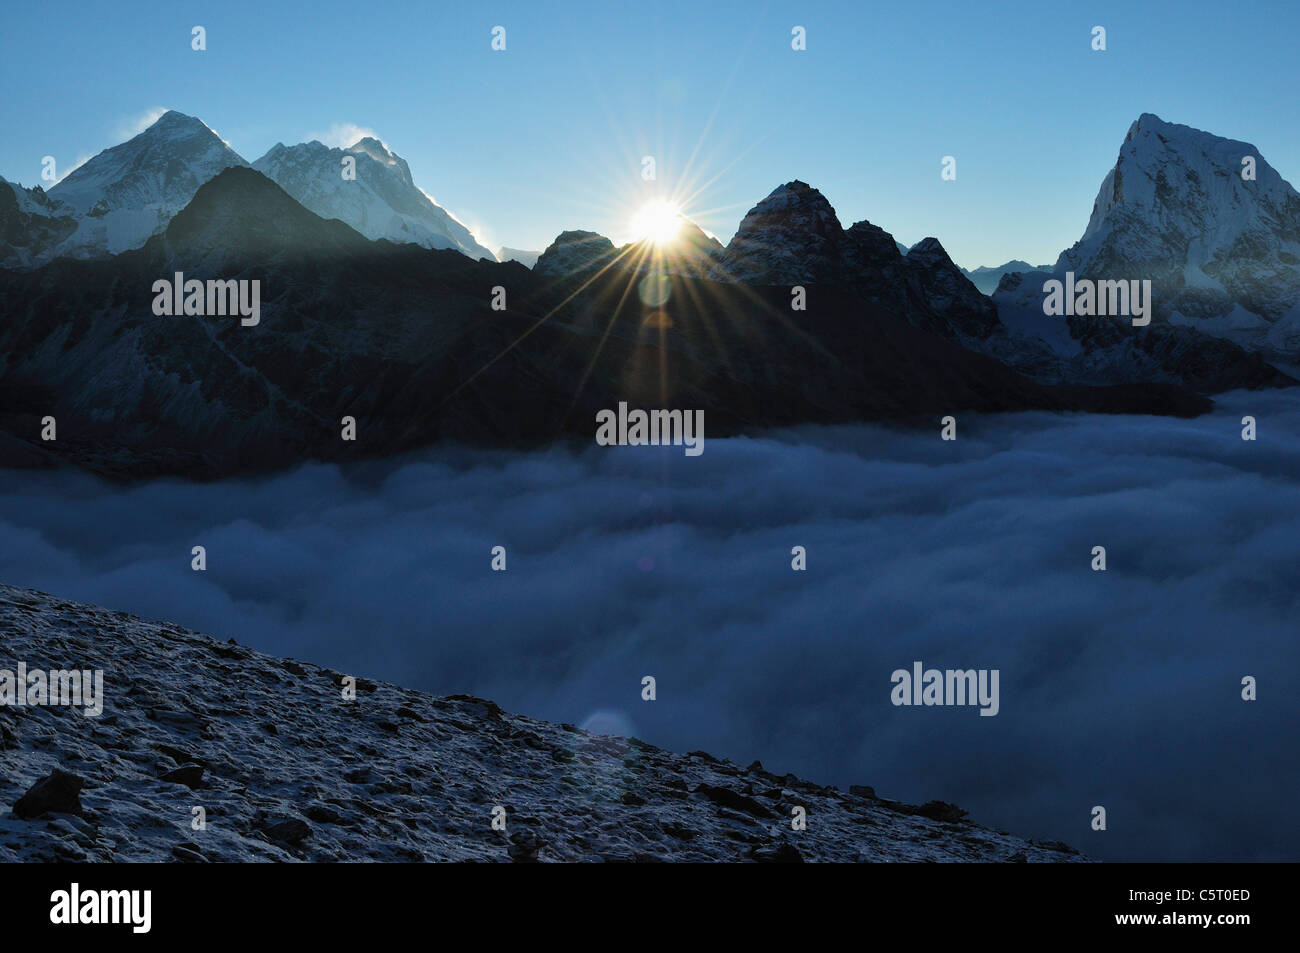 Asia, Nepal, Eastern Region, View of mountain ranges - Stock Image